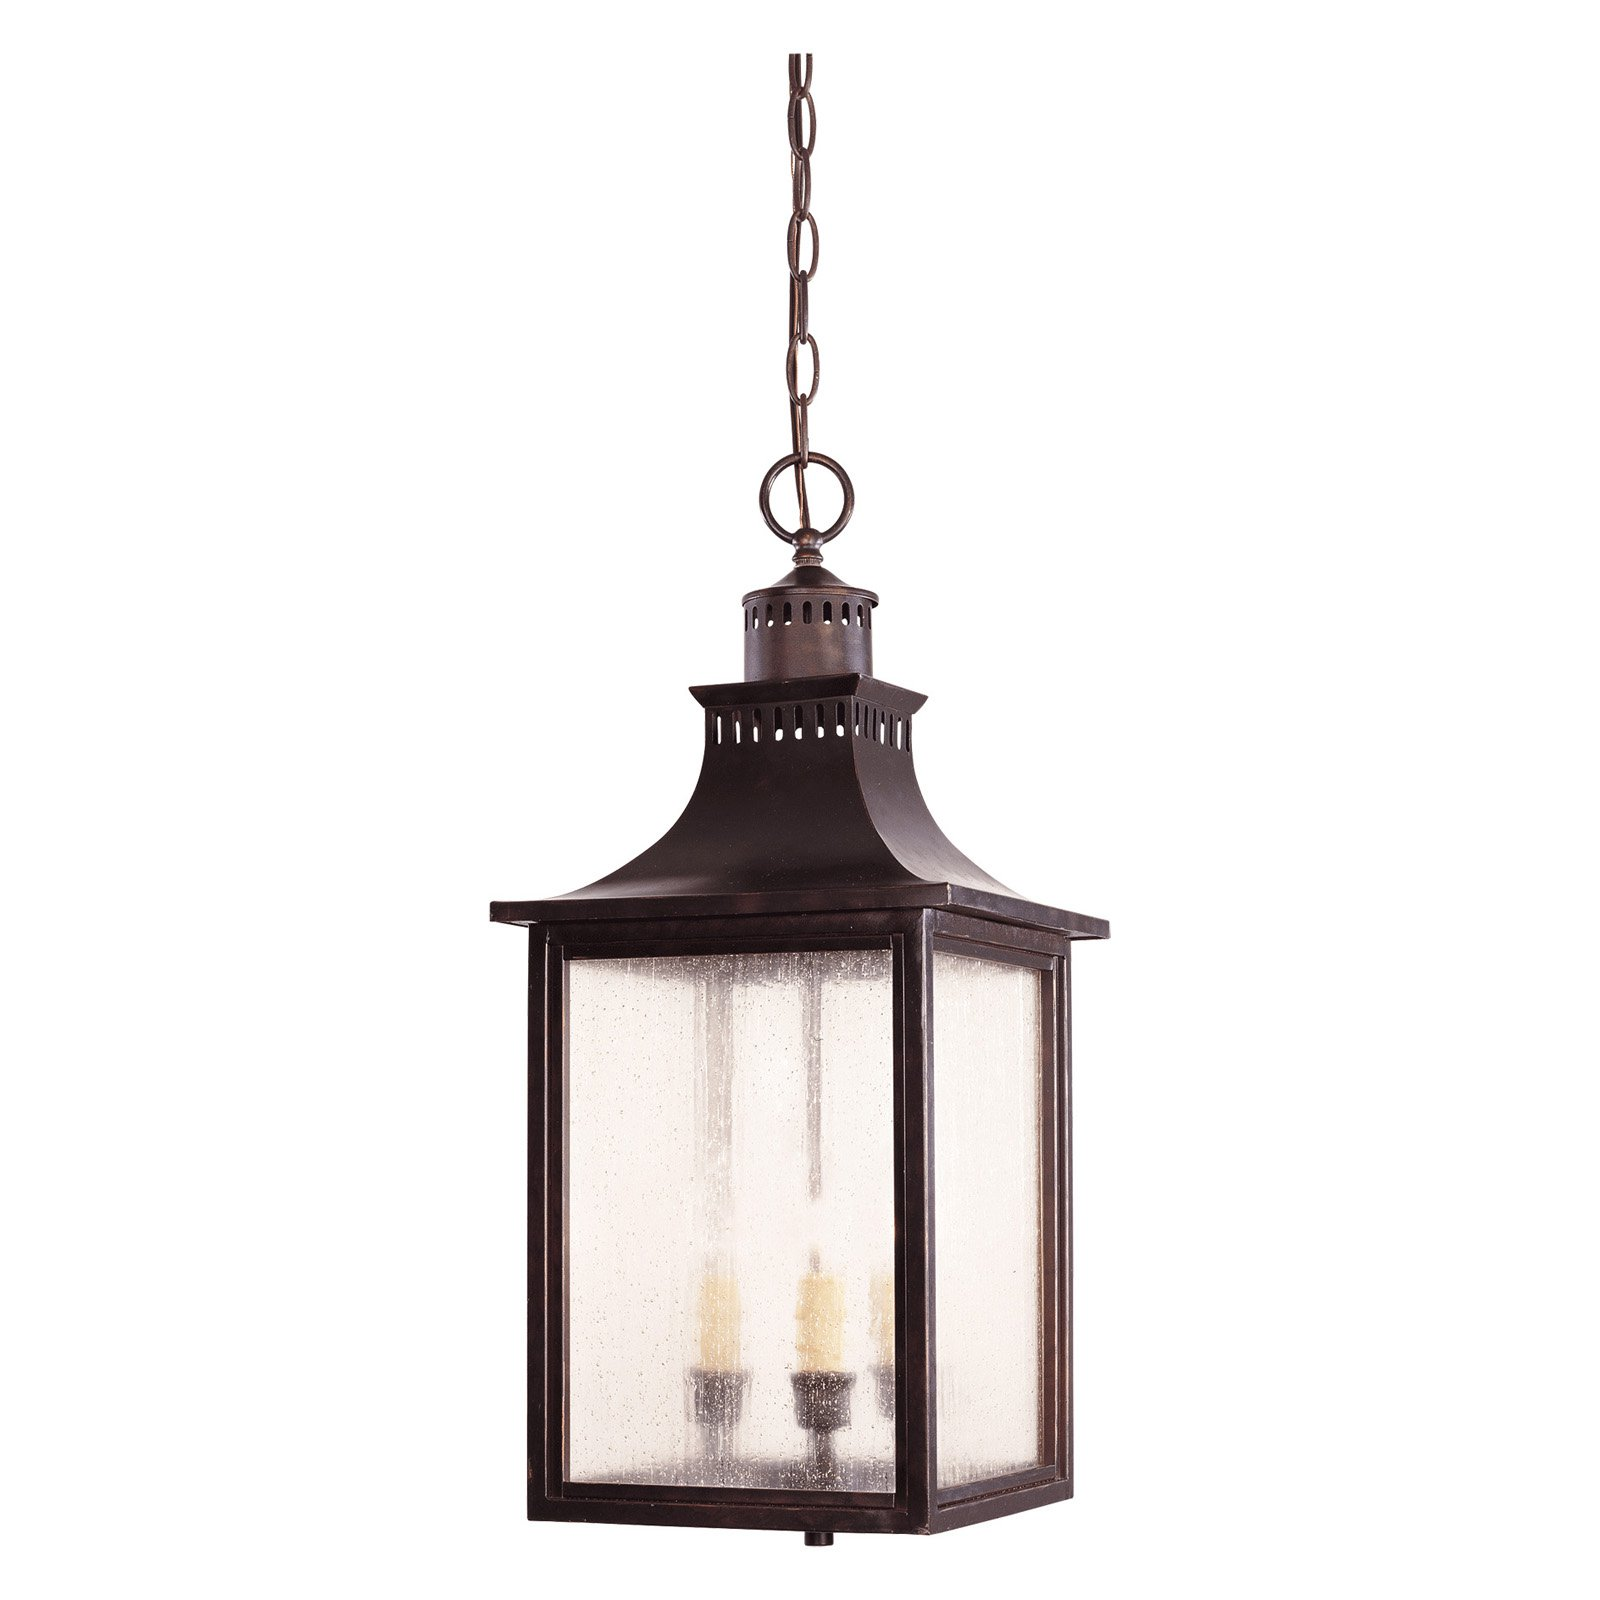 Savoy House Monte Grande 5-256 Outdoor Hanging Lantern by Savoy House